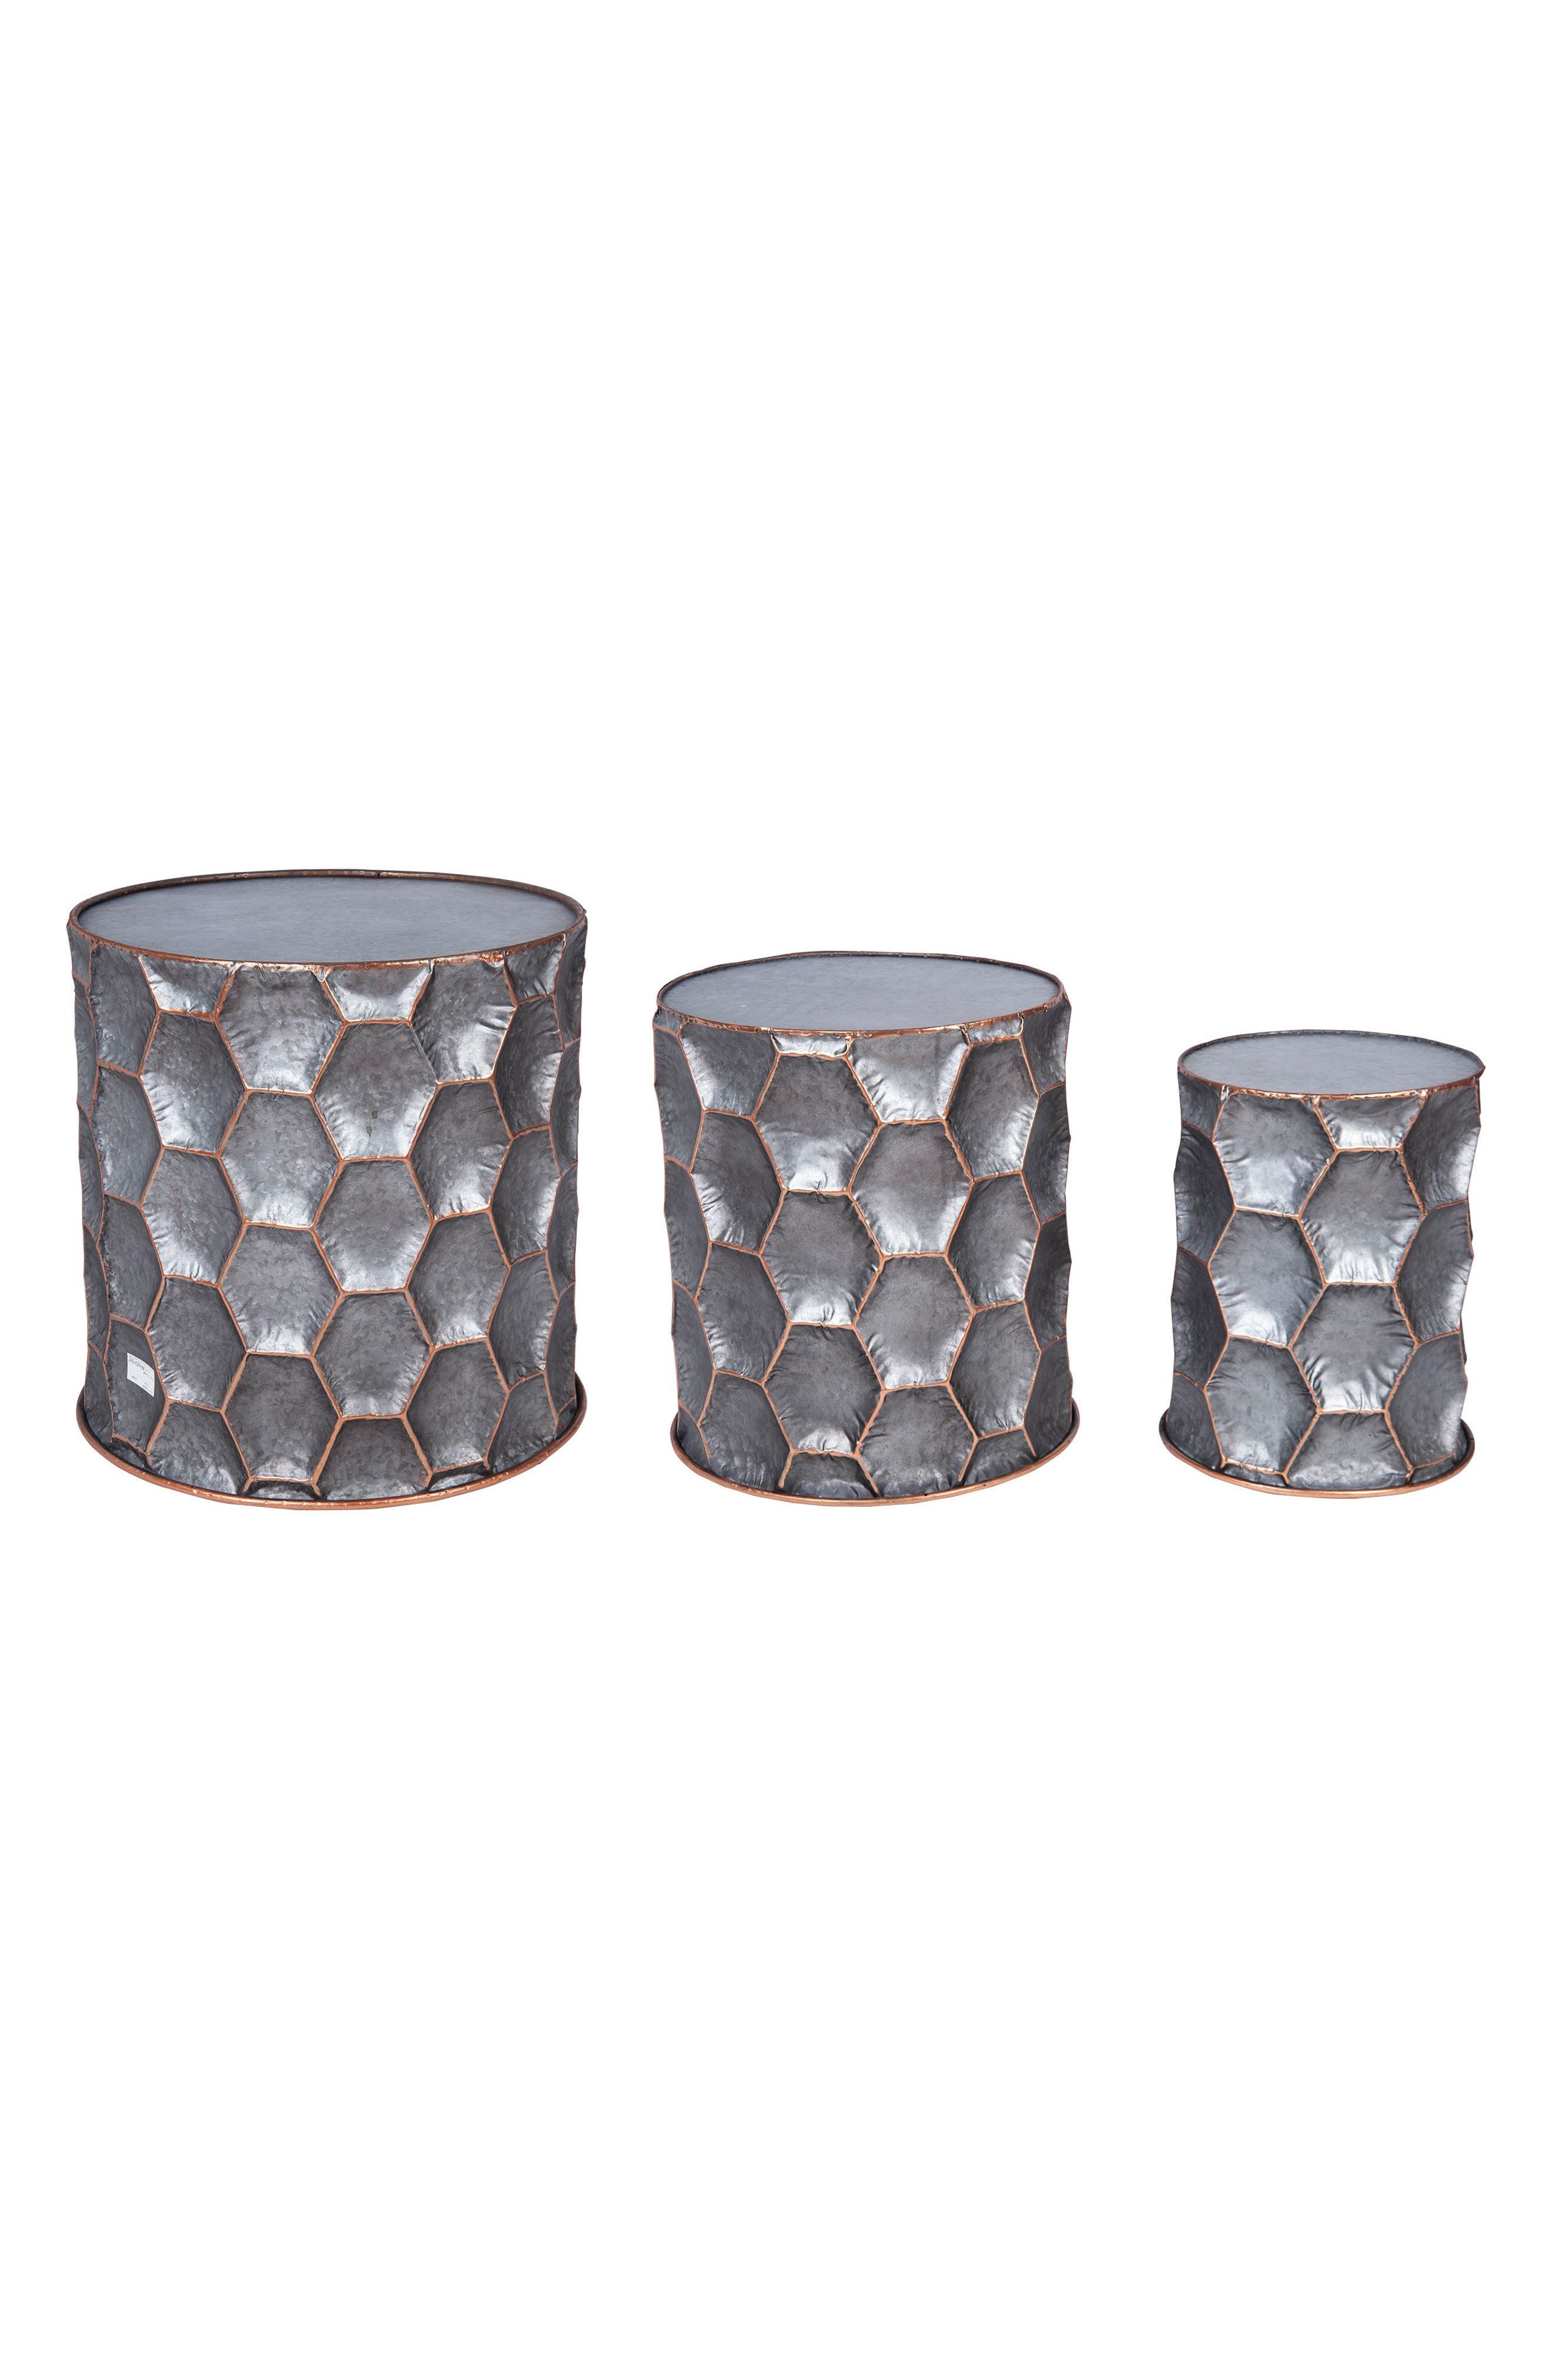 Main Image - Foreside Honeycomb Set of 3 Side Tables